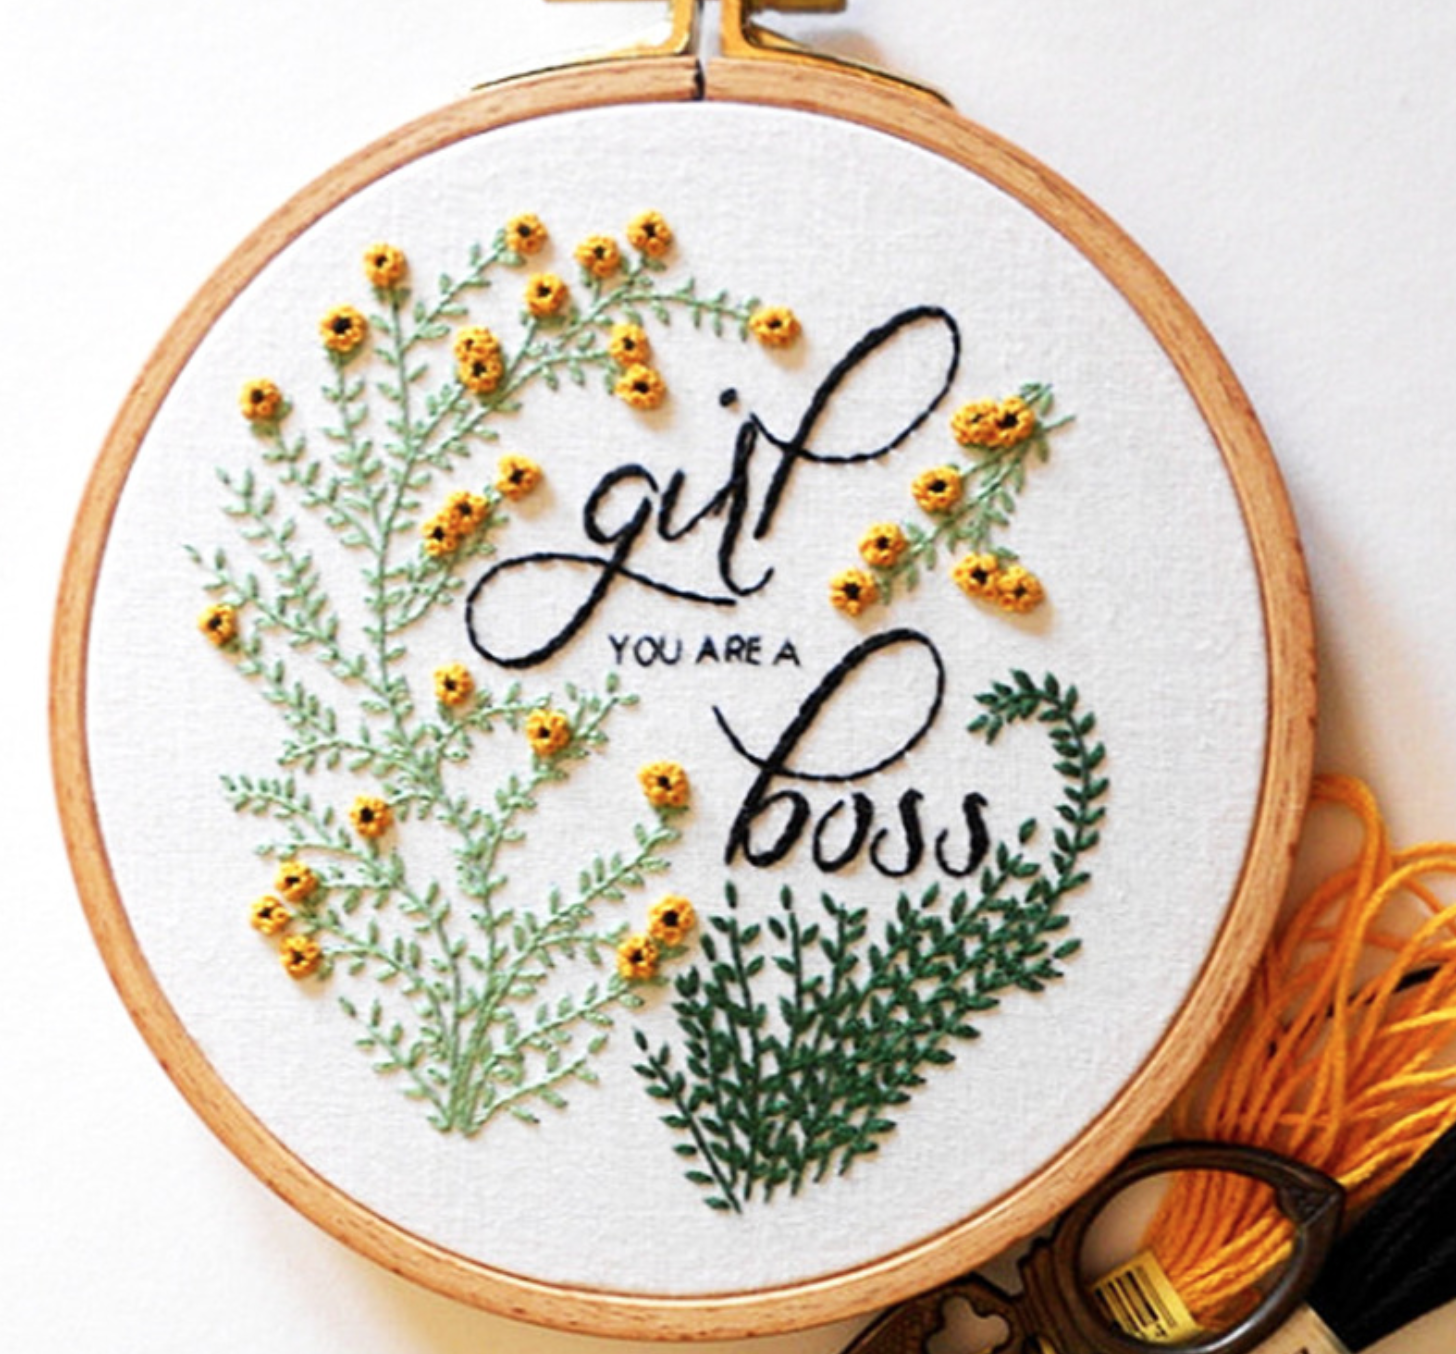 Girl Boss Embroidery